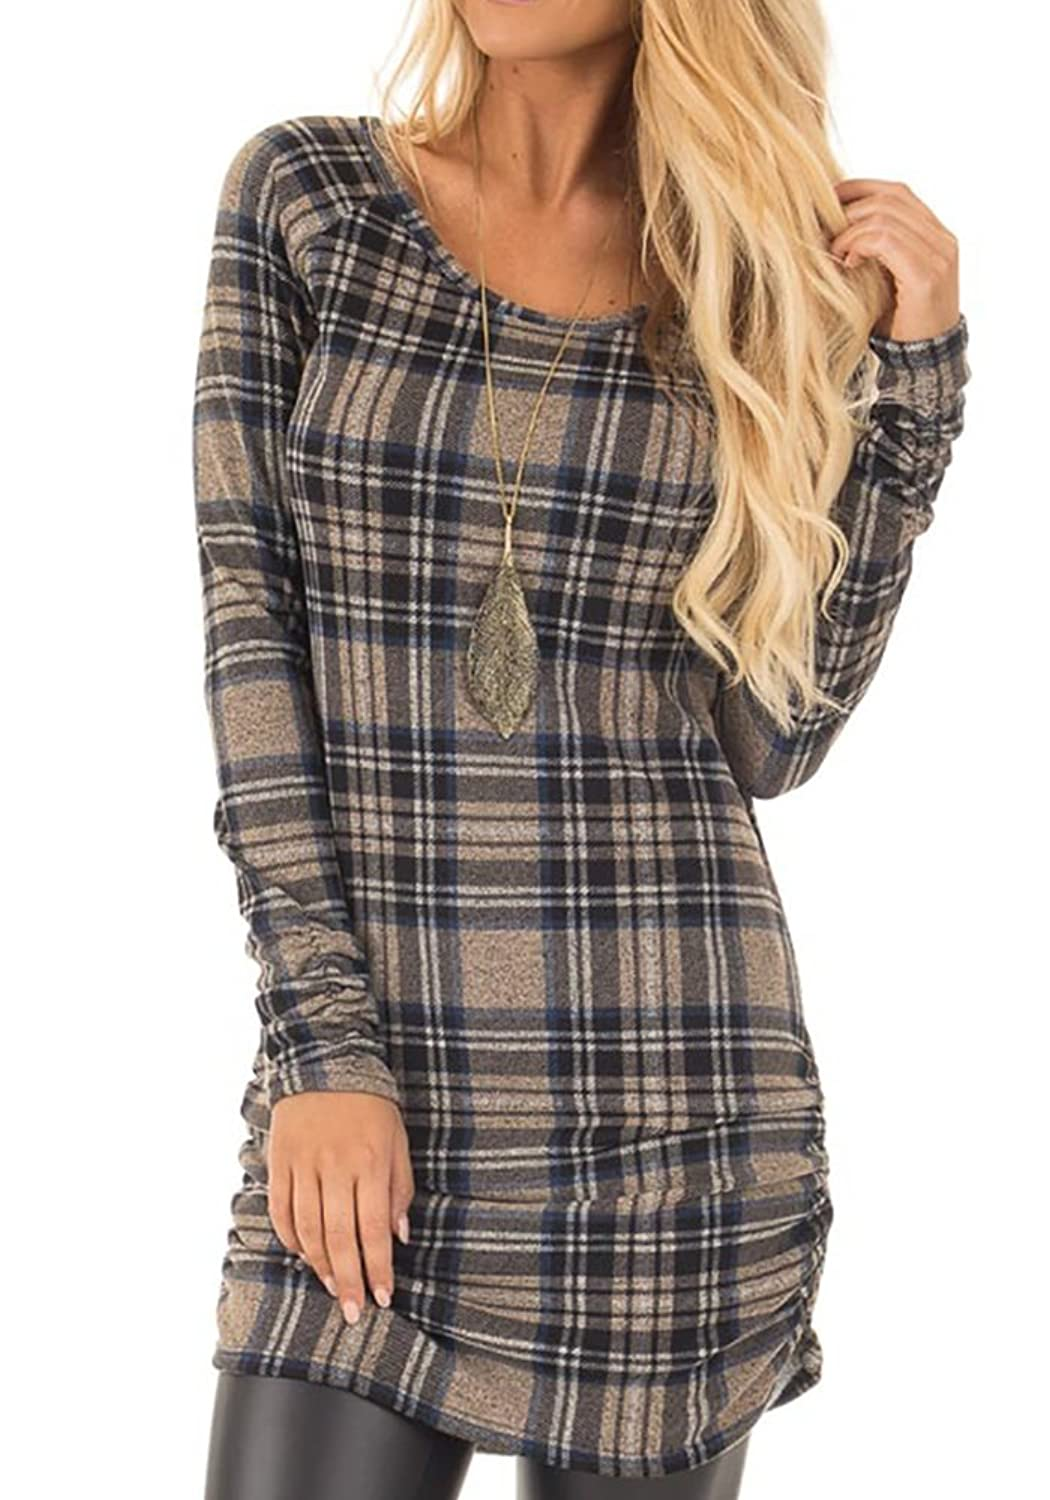 a38831035dbbe Top 10 wholesale Cotton Plaid Tunic - Chinabrands.com